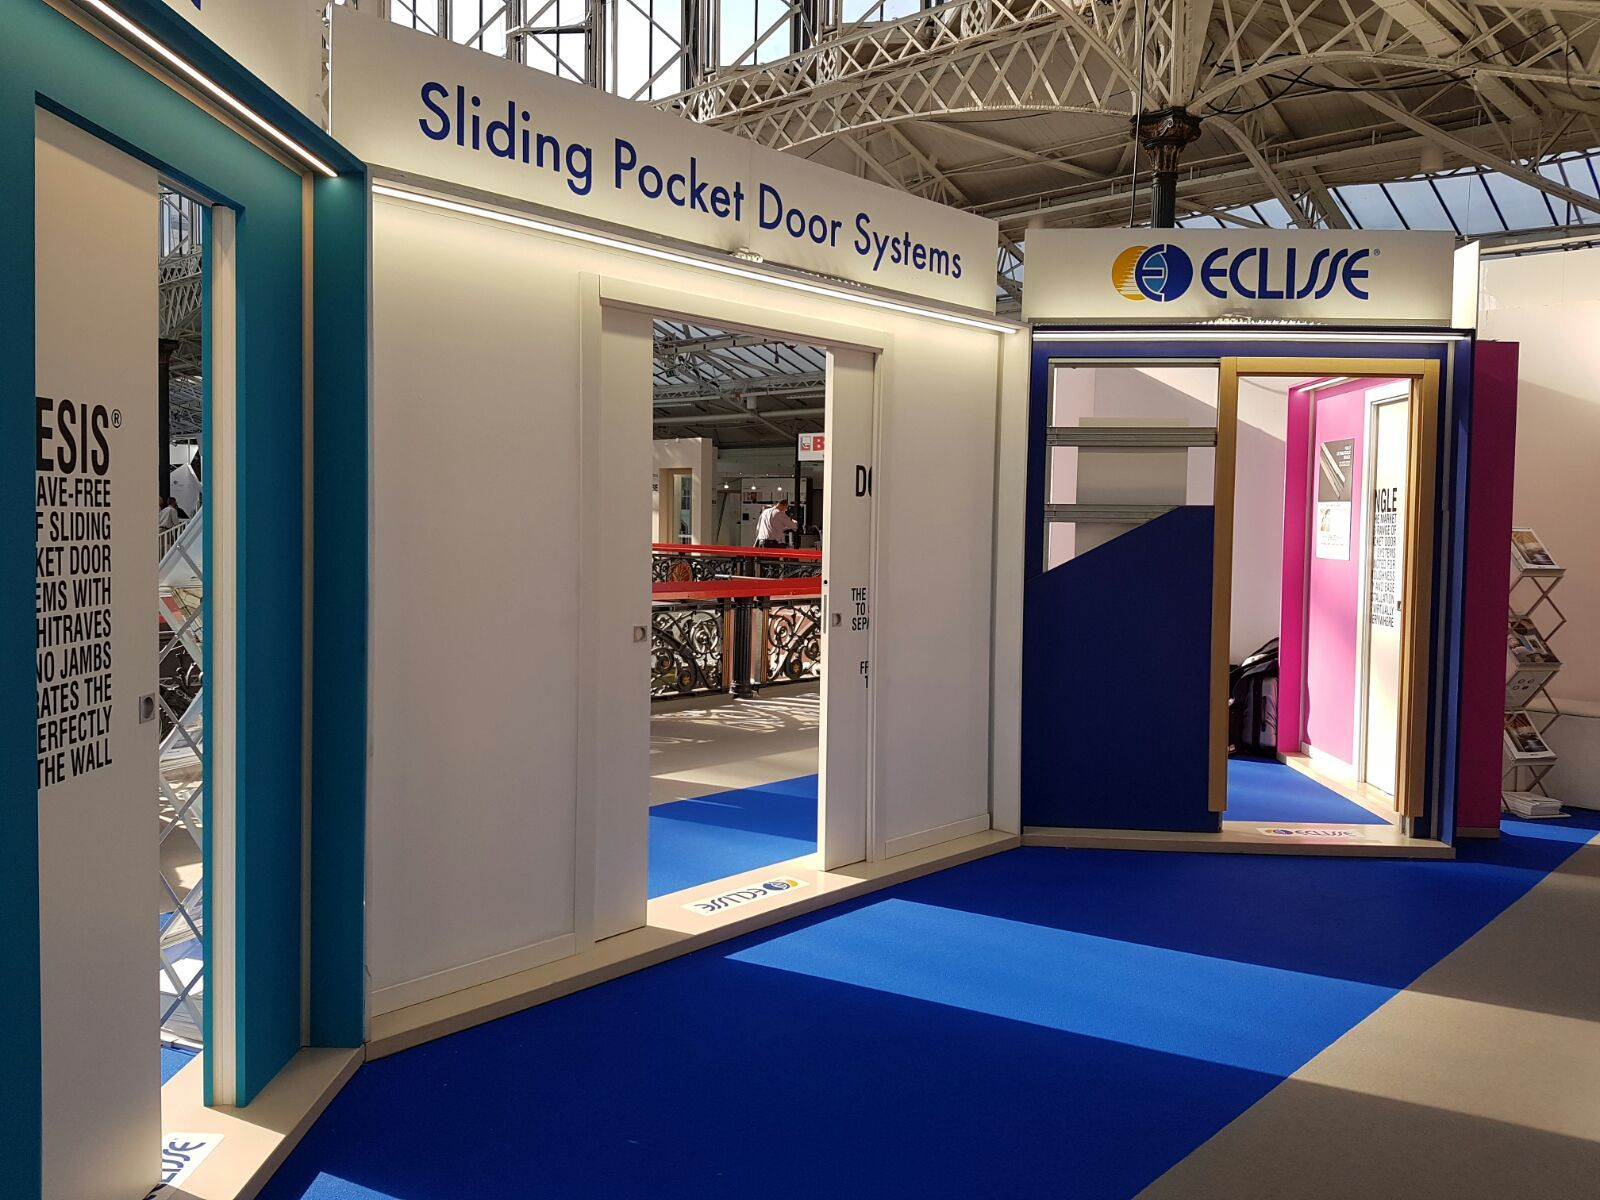 Eclisse Stand E854 At 100 Design Here You Can See The Double Pocket Doors With Coordination Systems And Anti Slam In T Sliding Pocket Doors Pocket Doors Double Pocket Door